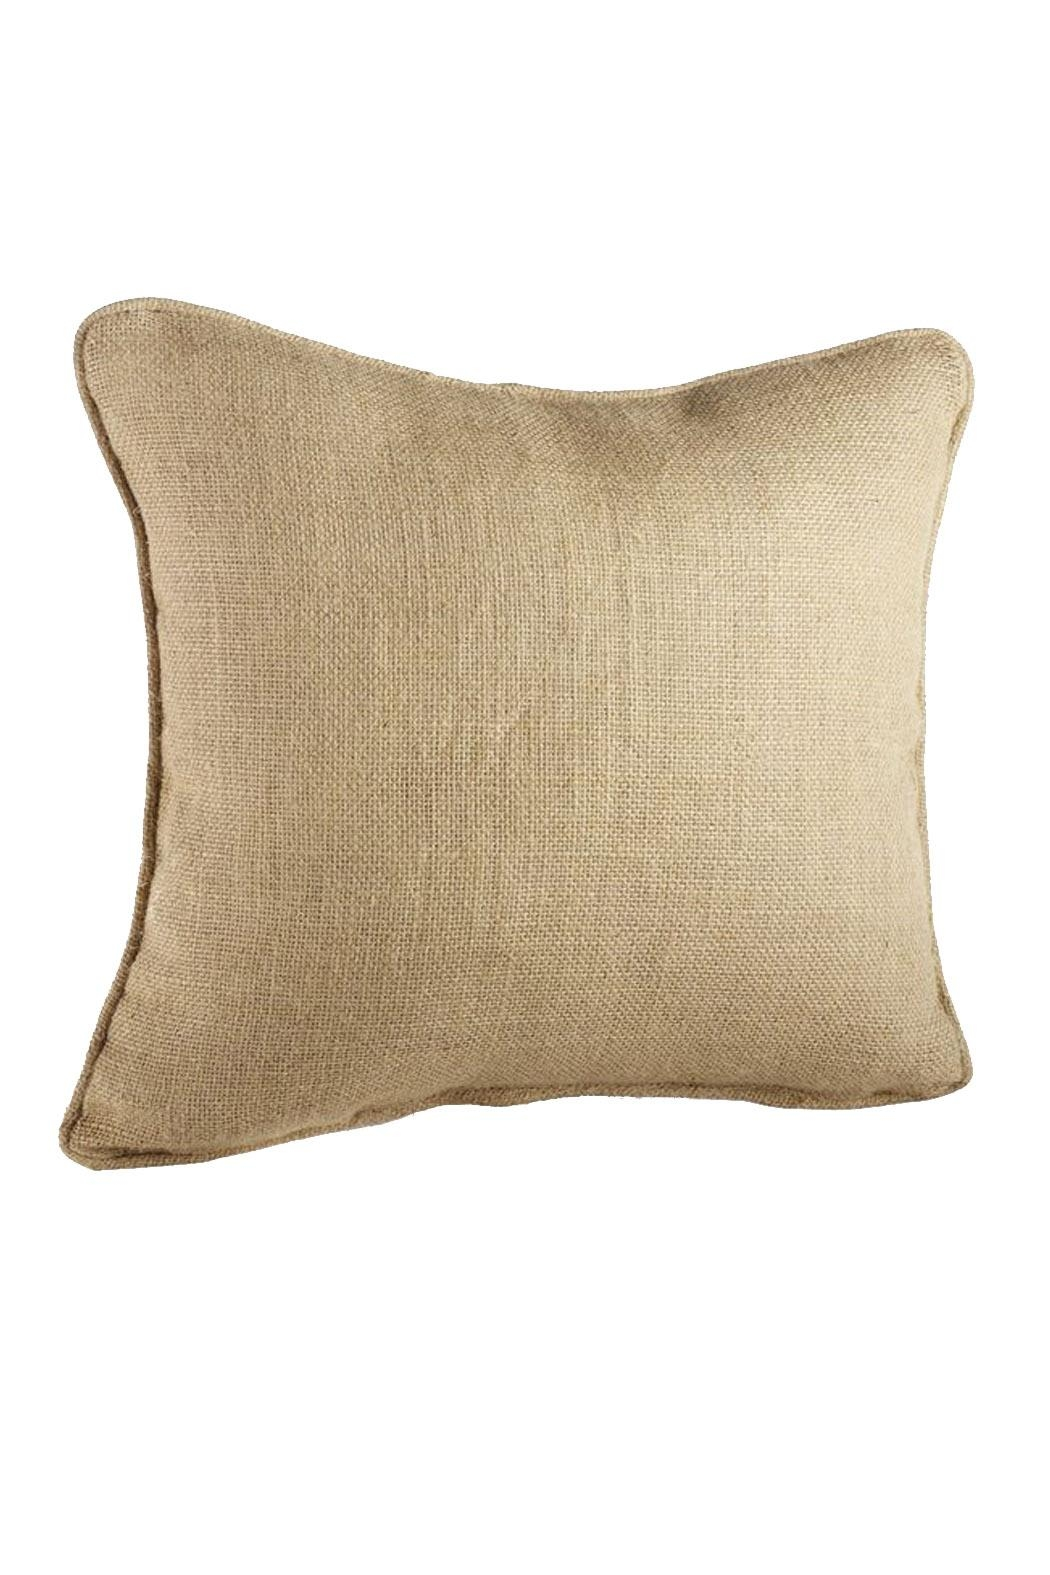 Mud Pie Burlap Pillow - Main Image